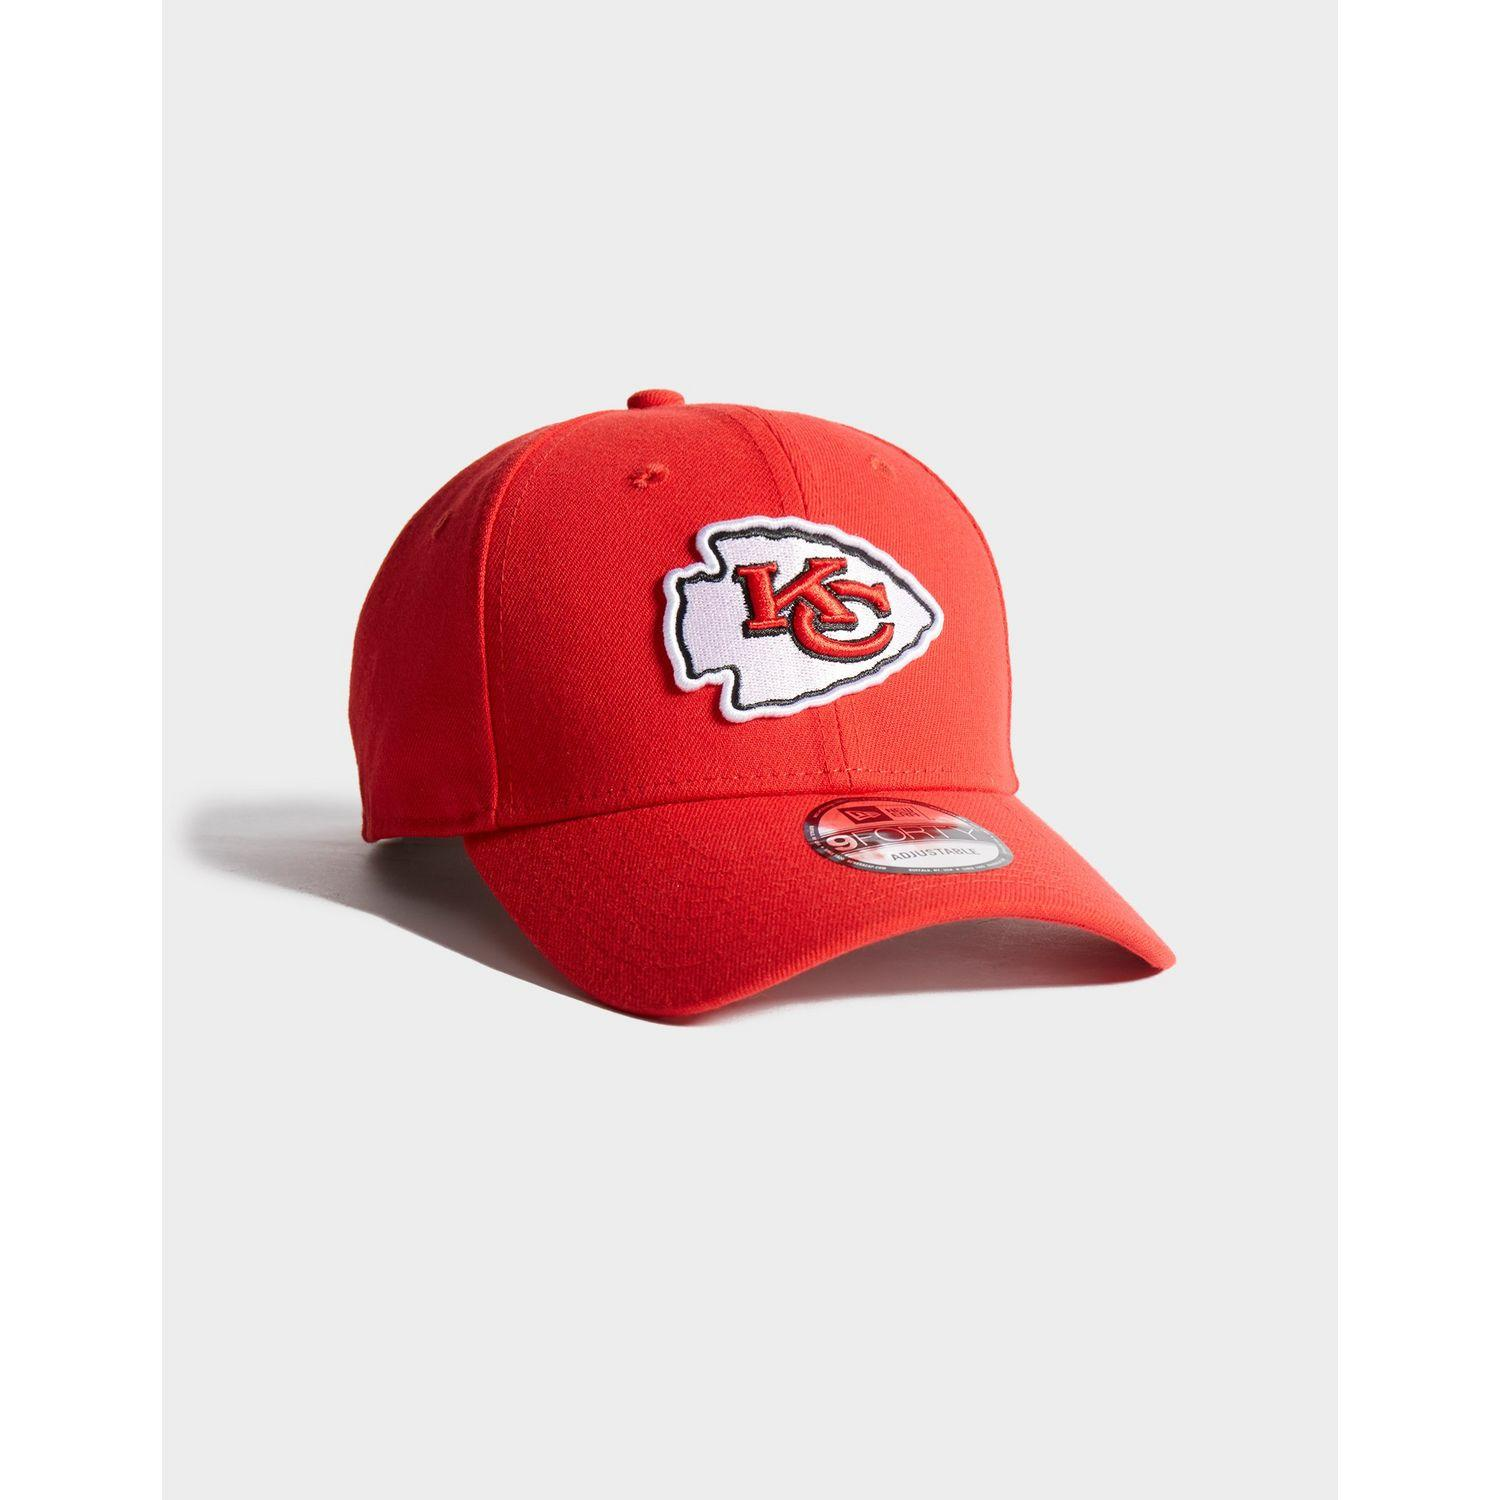 on sale ded44 77833 KTZ. Women s Red Nba Kansas City Chiefs 9forty Cap